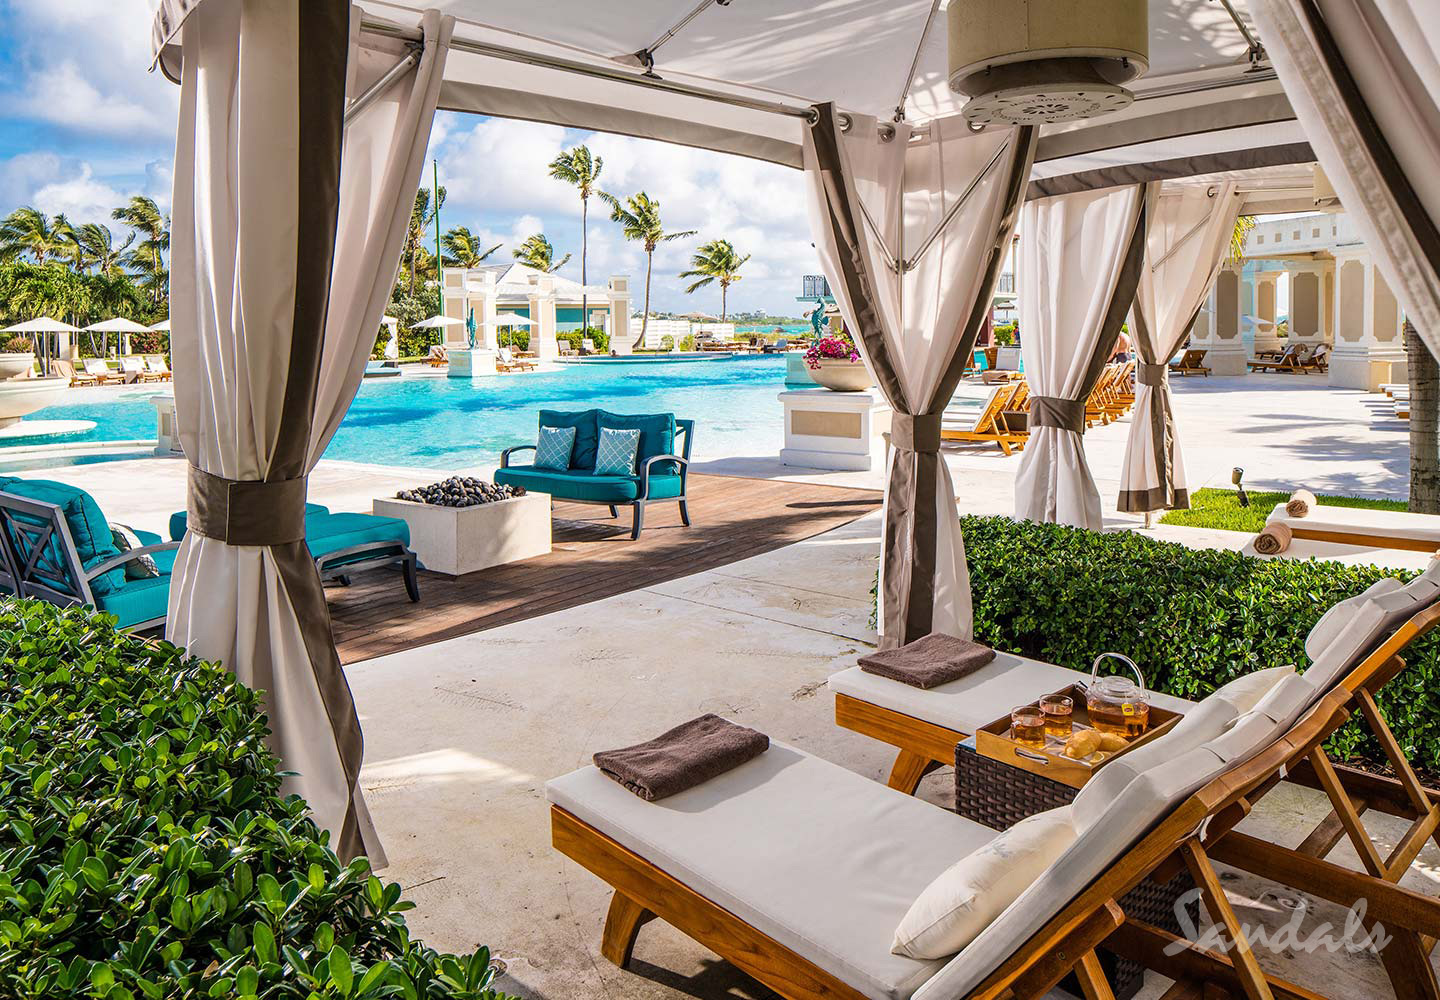 Travel Agency All-Inclusive Resort Sandals Emerald Bay 119